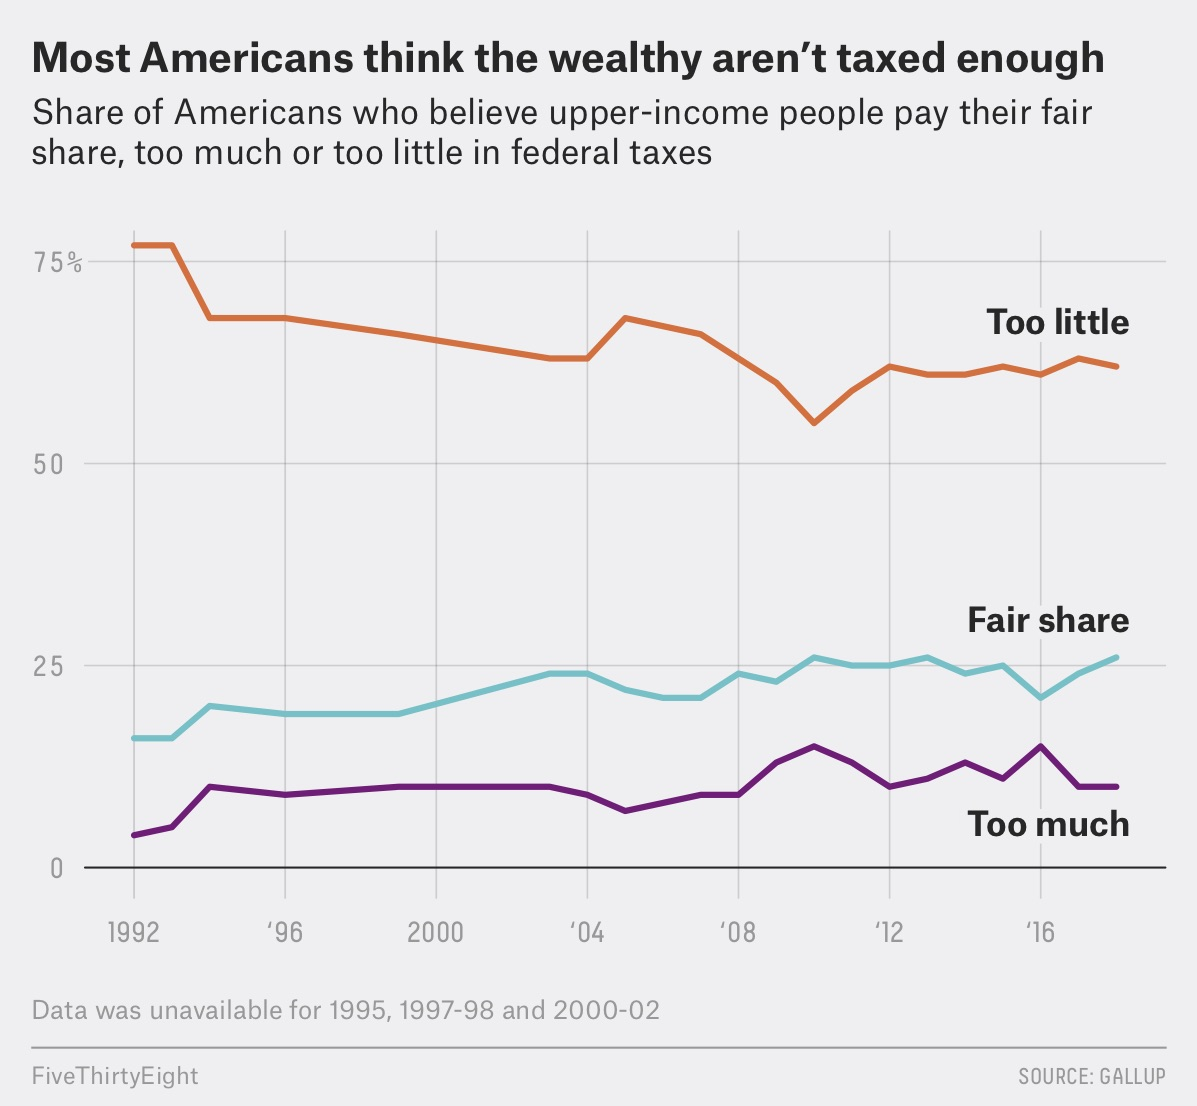 So why haven't the rich paid more in taxes?